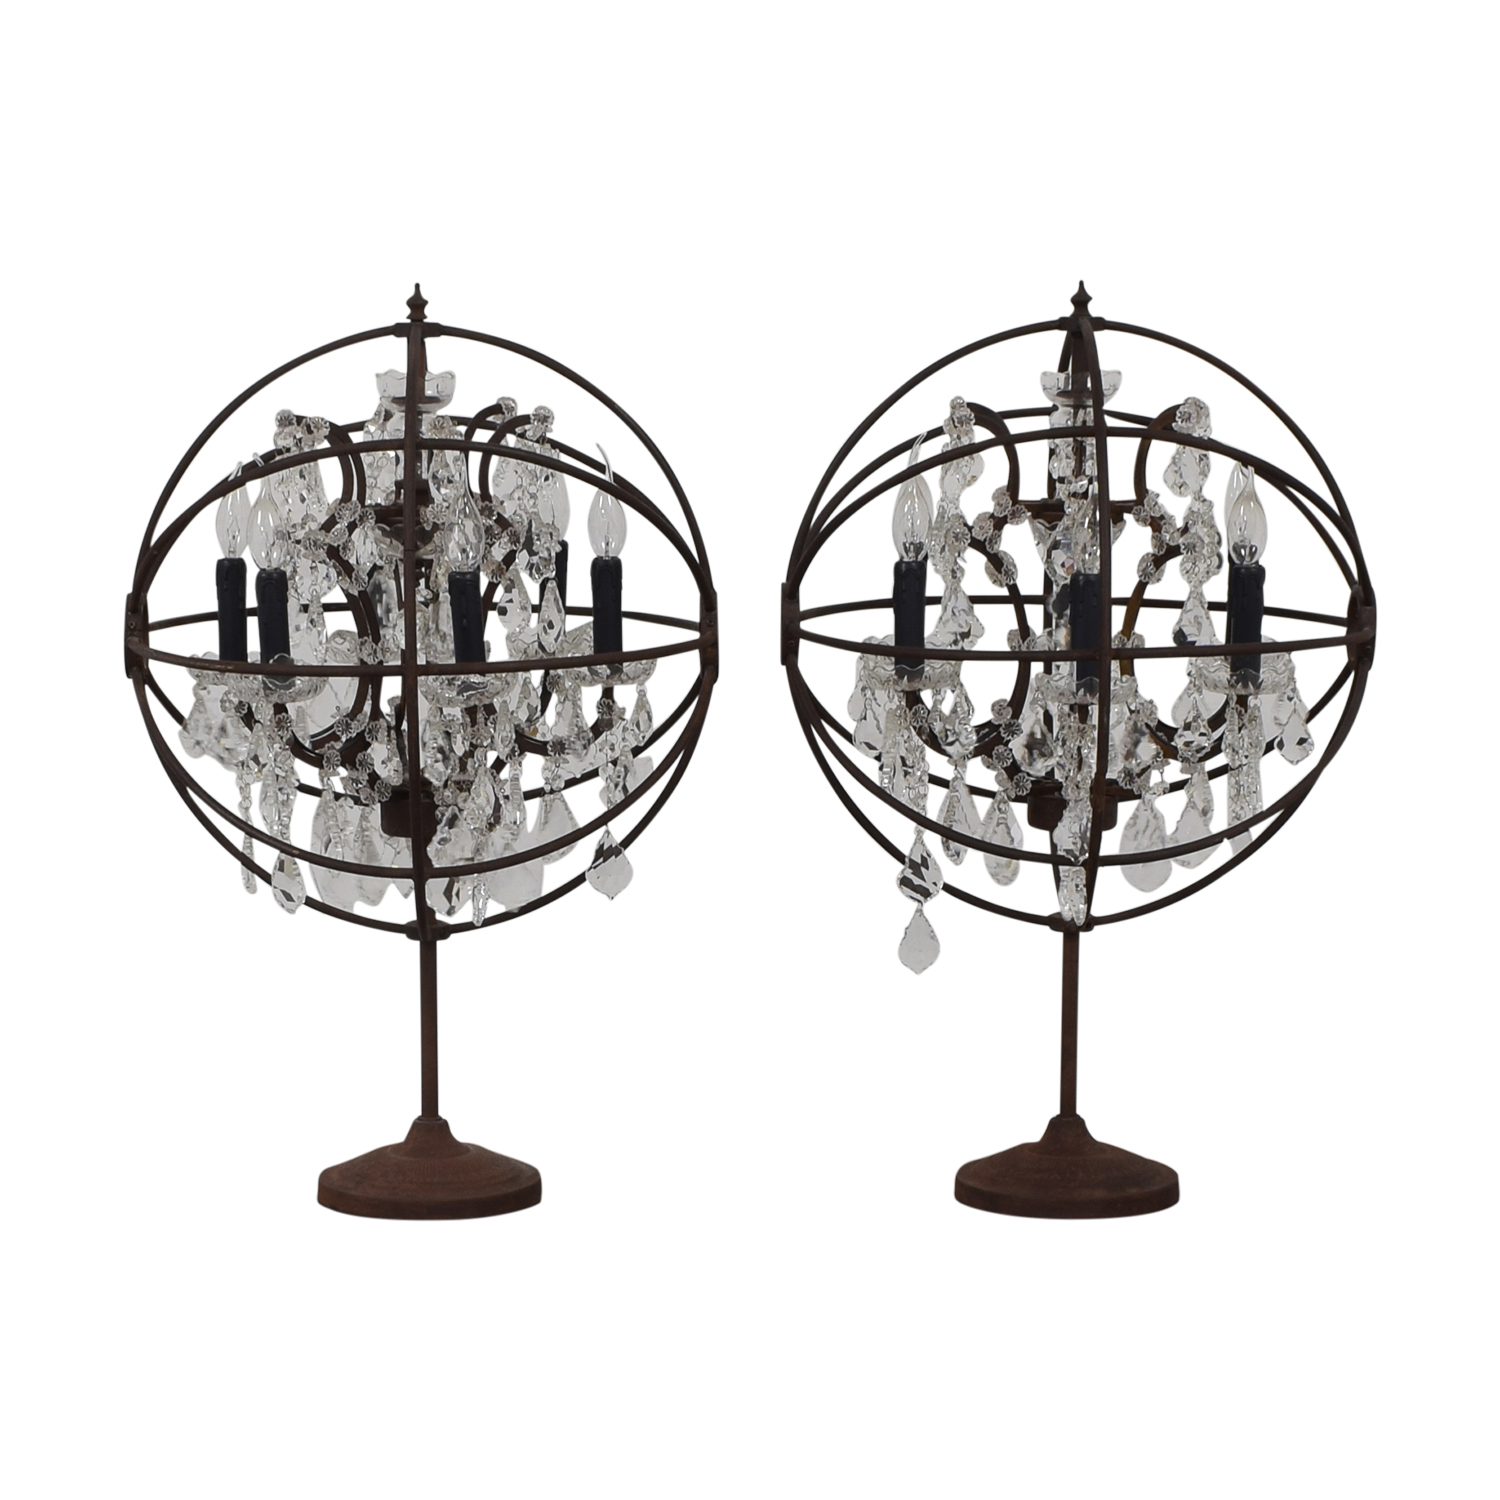 Restoration Hardware Restoration Hardware Orb Crystal Table Lamps Decor